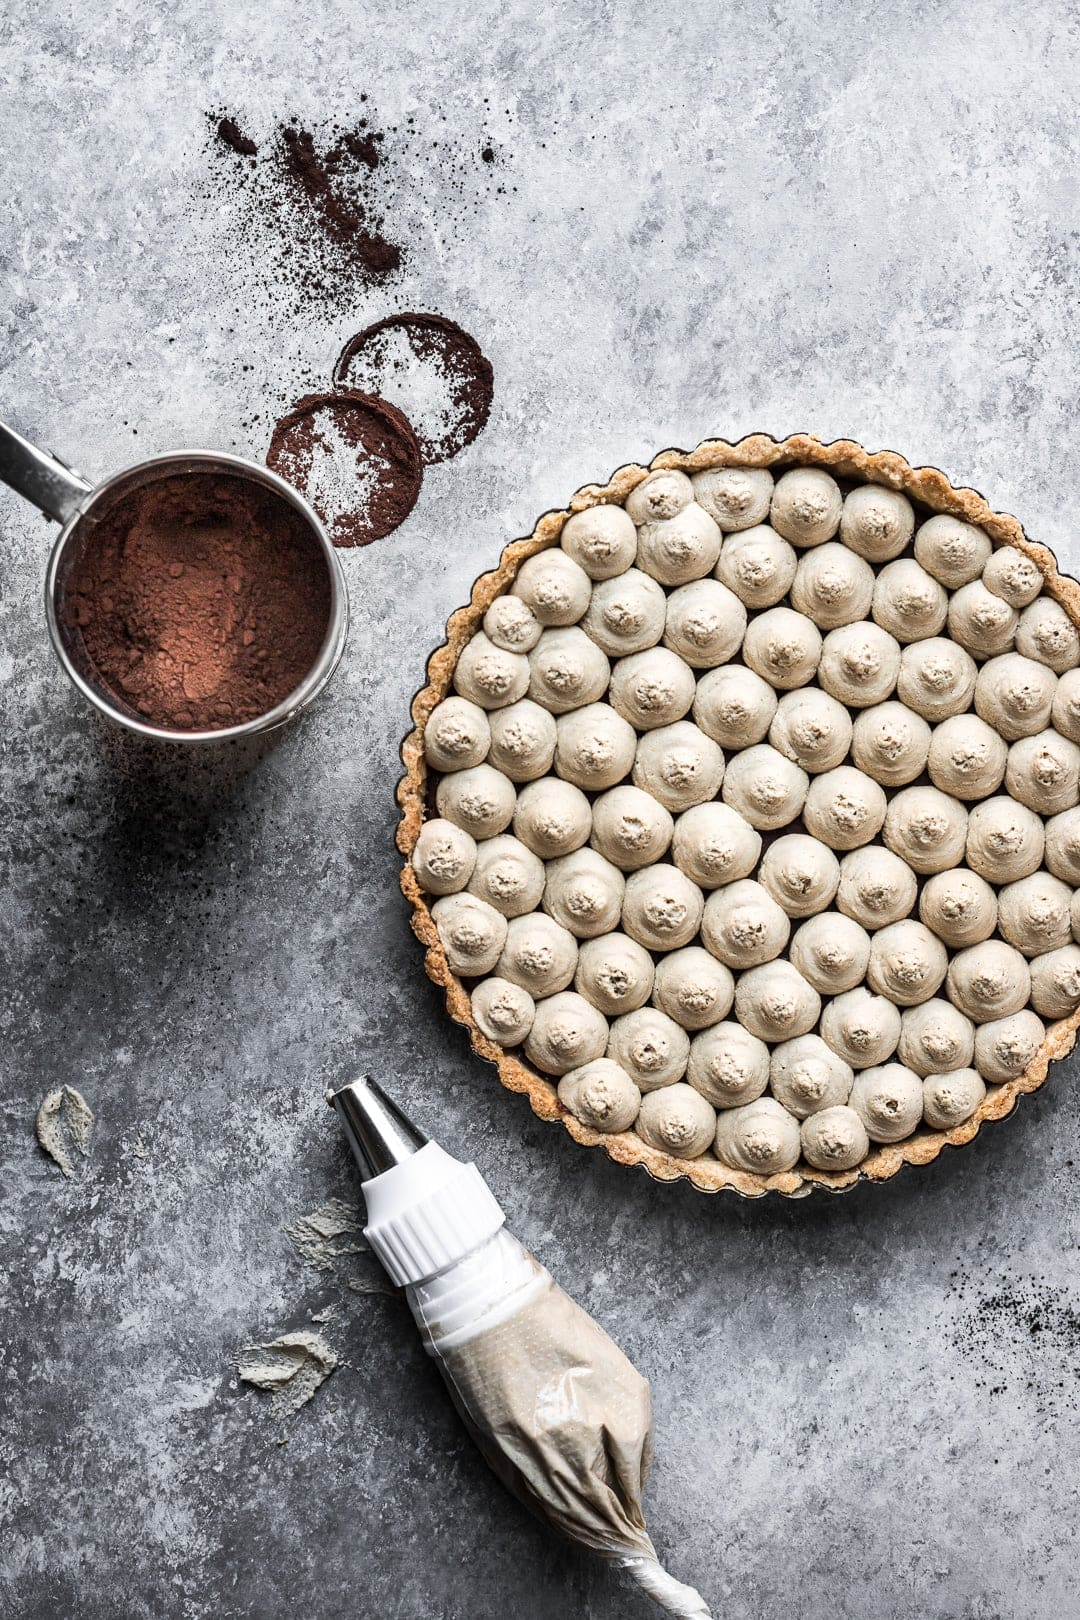 Chocolate coffee mascarpone tart on a grey background with cocoa powder and piping bag nearby